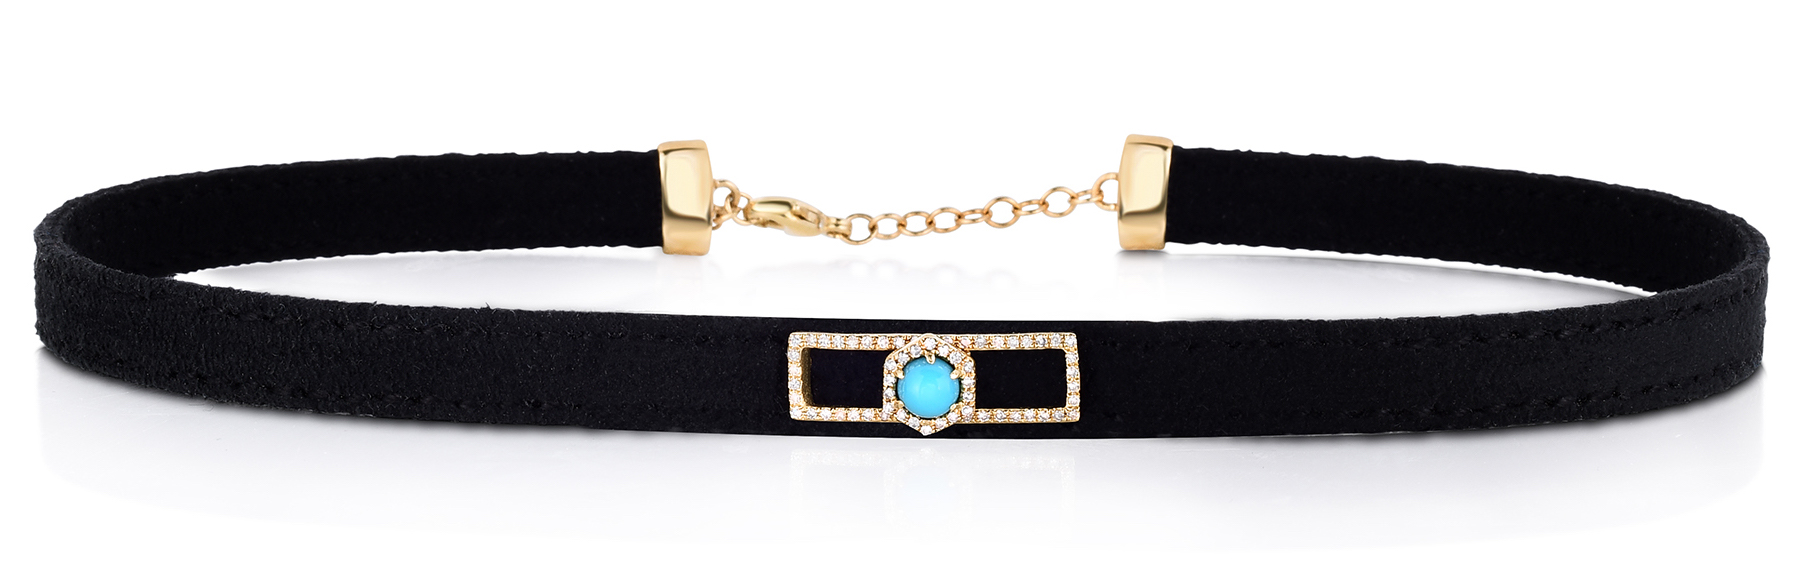 Fern Freeman suede choker necklace with turquoise | JCK On Your Market